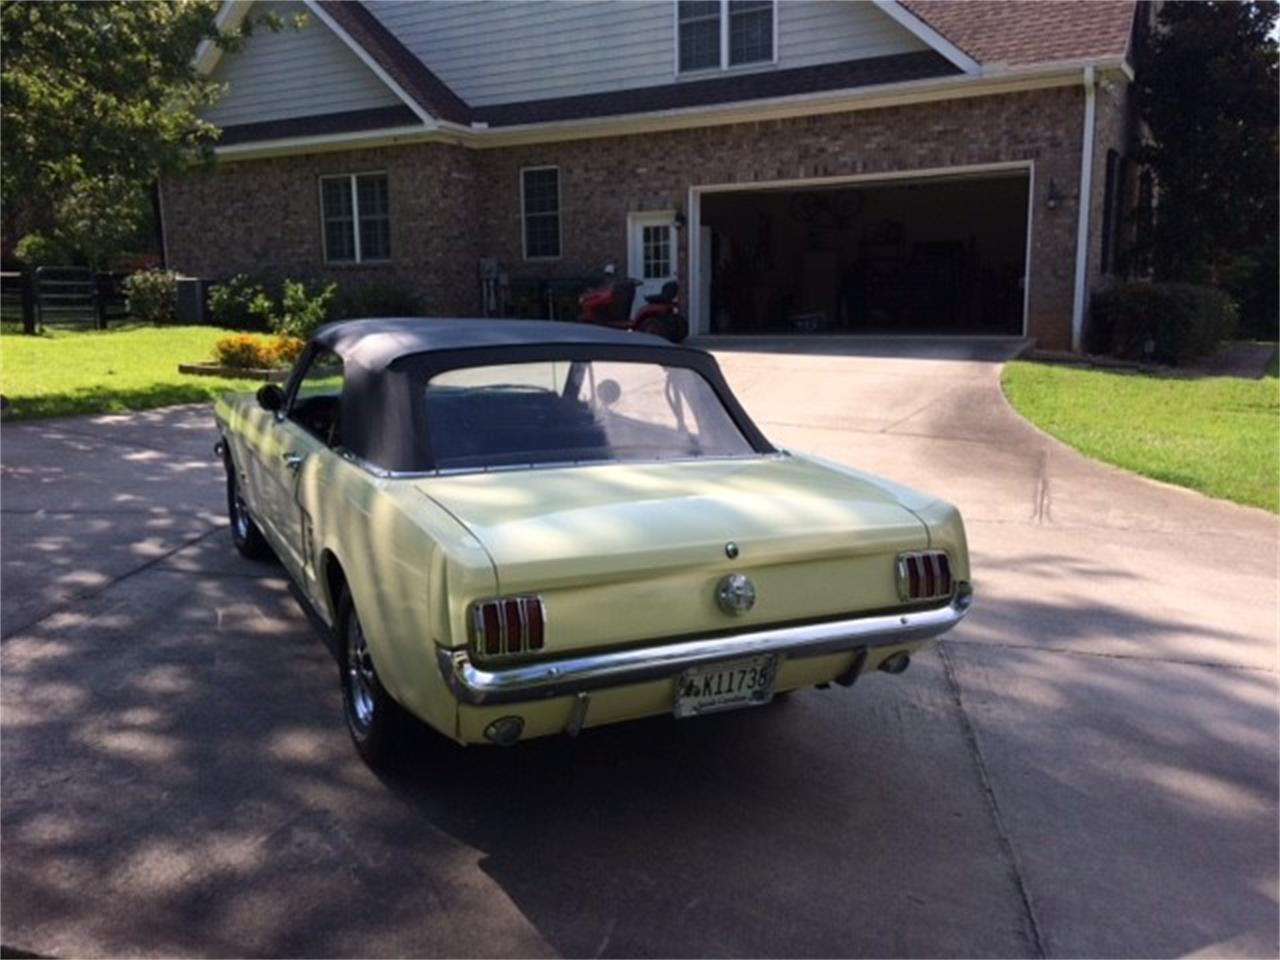 Large Picture of 1966 Ford Mustang located in South Carolina - $26,000.00 - QPS2